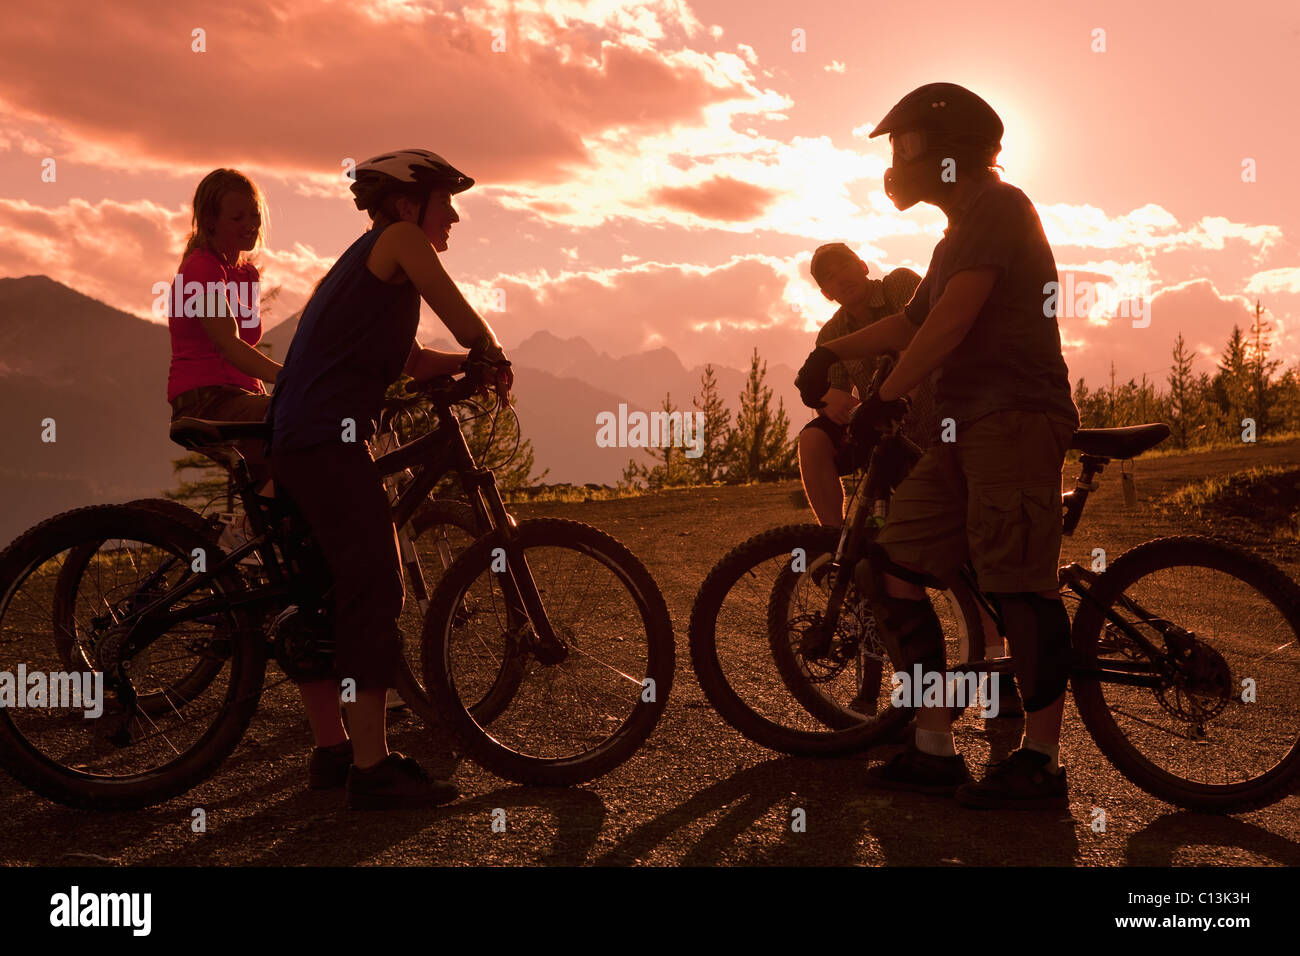 Canada, British Columbia, Fernie, Four people on bike trip - Stock Image